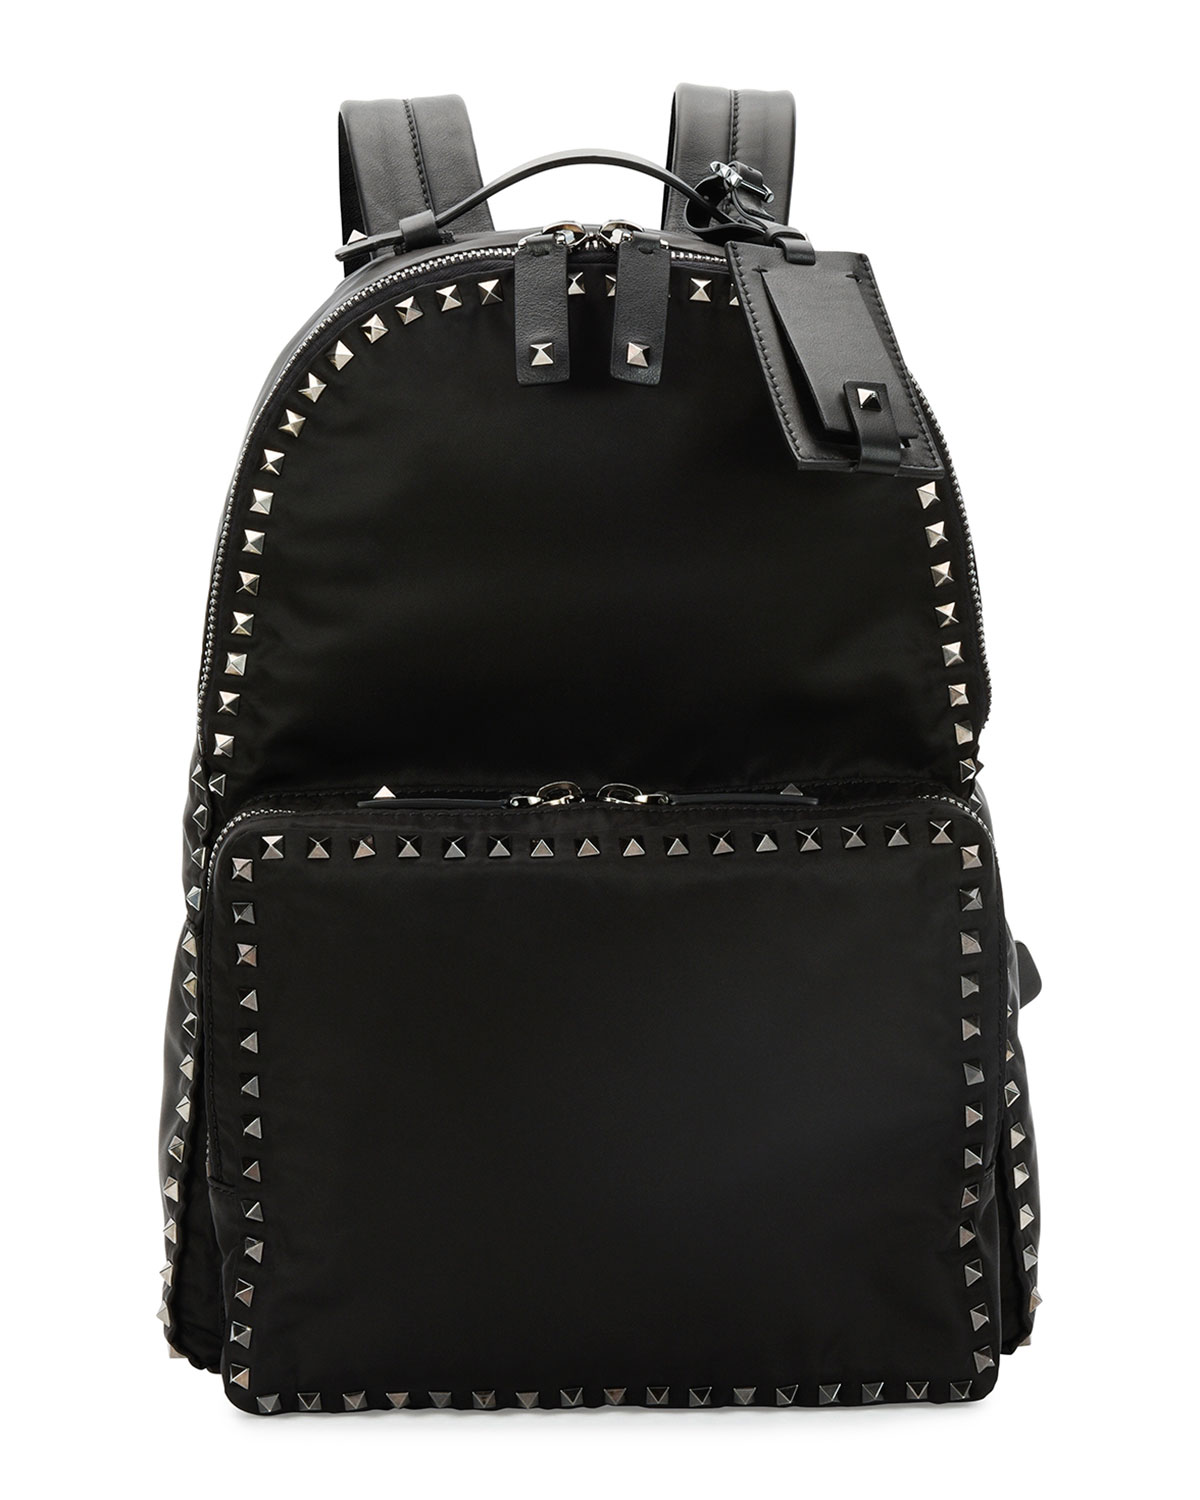 Rockstud Nylon Backpack, Black - Valentino